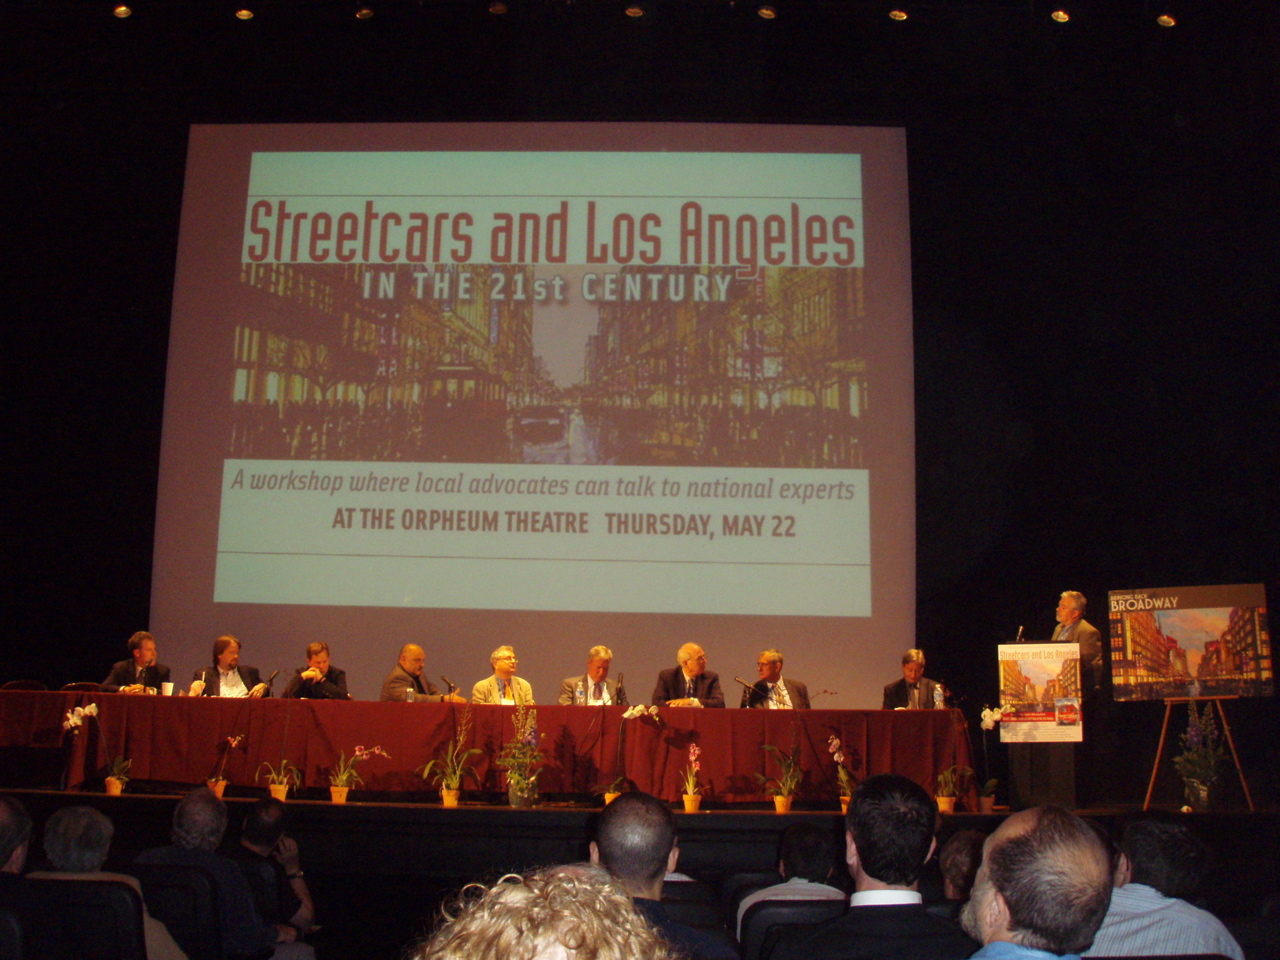 streetcarconference_4276574039_o.jpg